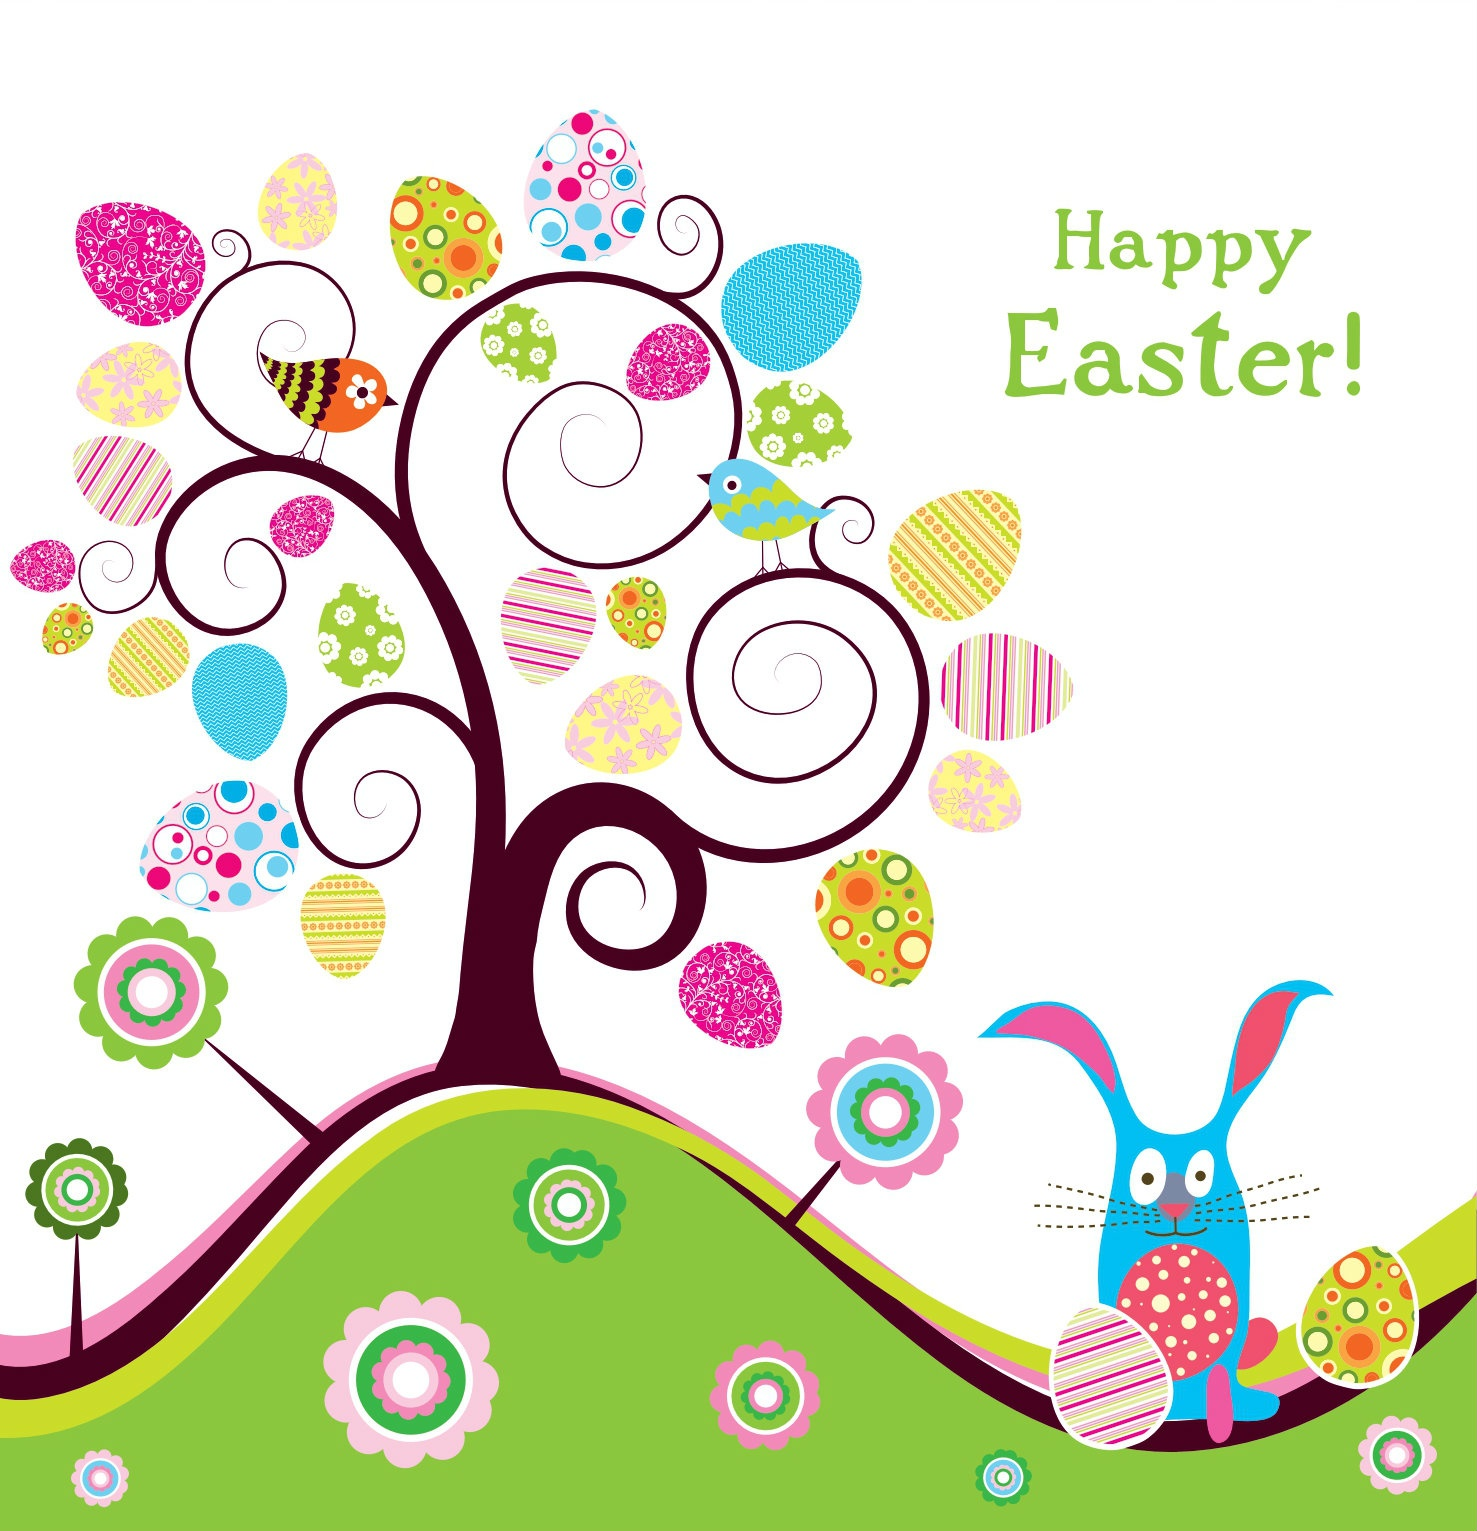 Happy Easter Cards Printable – Happy Easter & Thanksgiving 2018 - Free Printable Easter Cards To Print